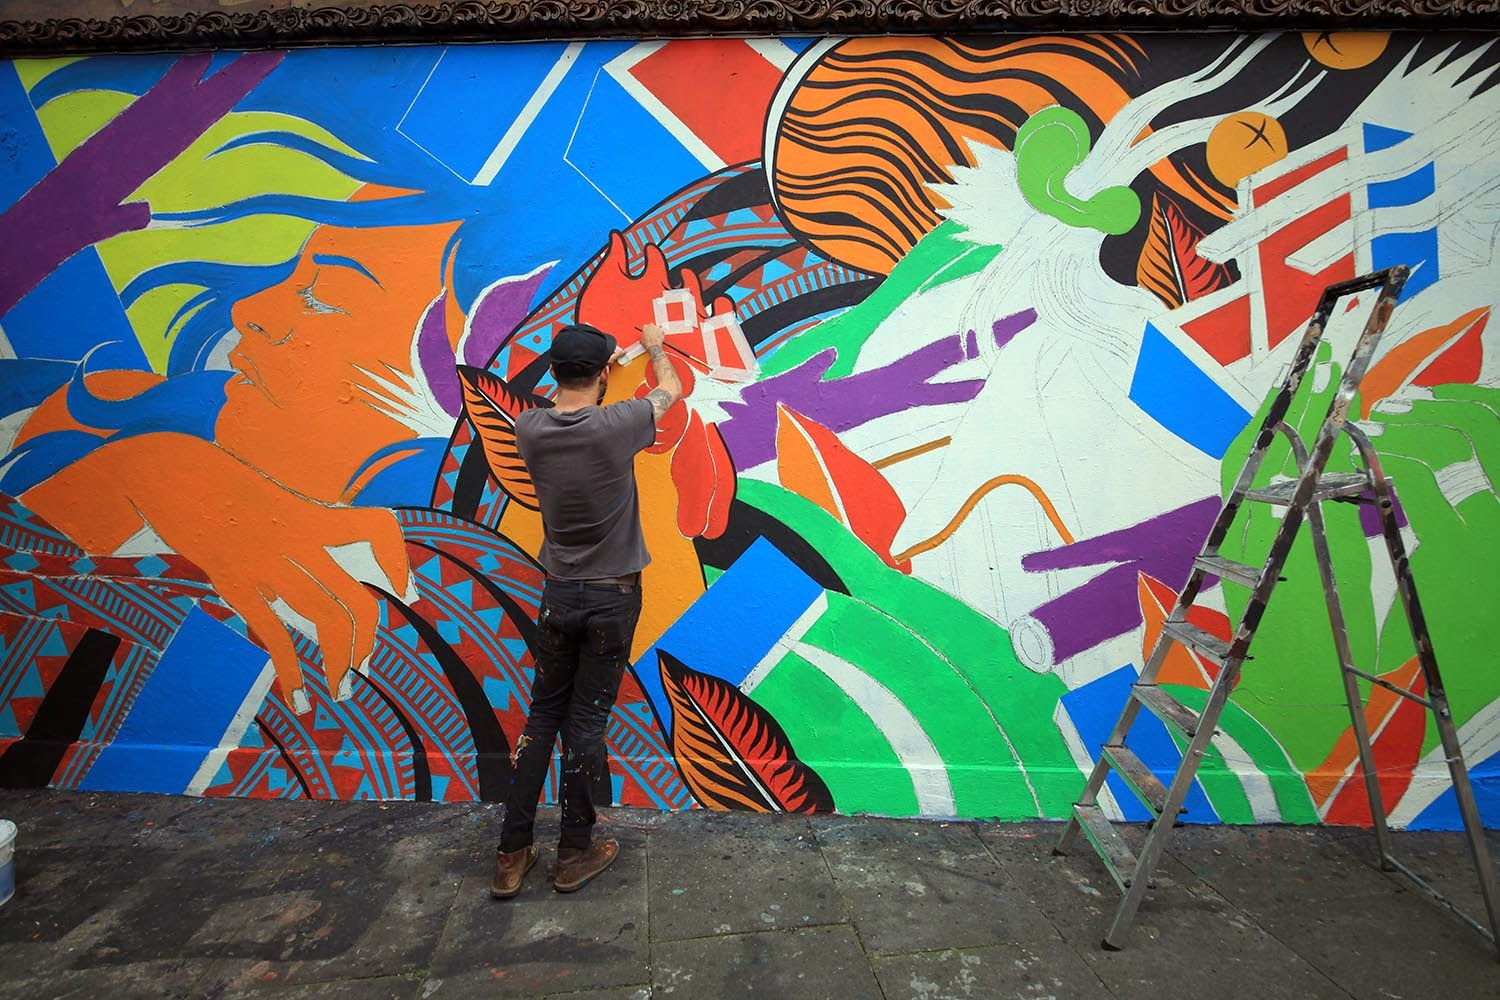 Bicicleta Sem Freio Work In Progress – London, UK